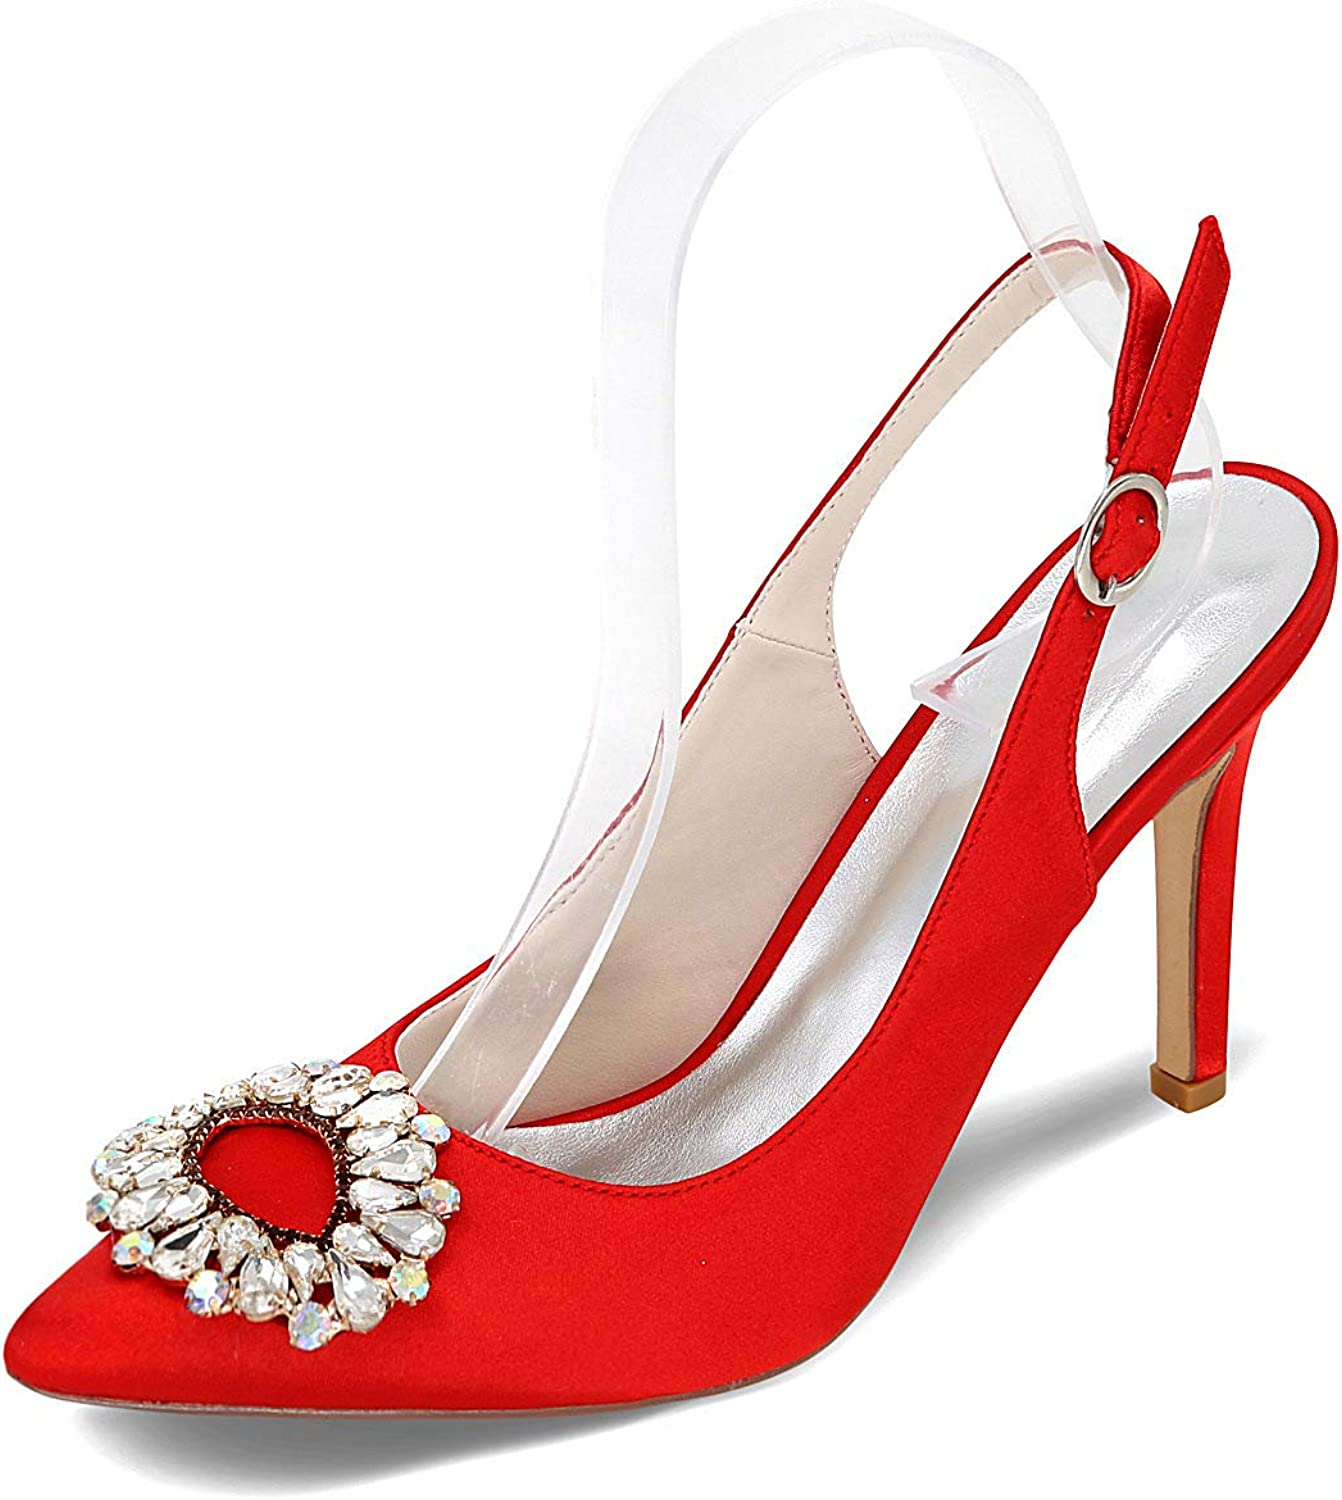 LLBubble Women High Heels Satin Wedding shoes Pointed Toe Buckle Strap Bridal Pumps Formal Party Dress shoes 0608-20F